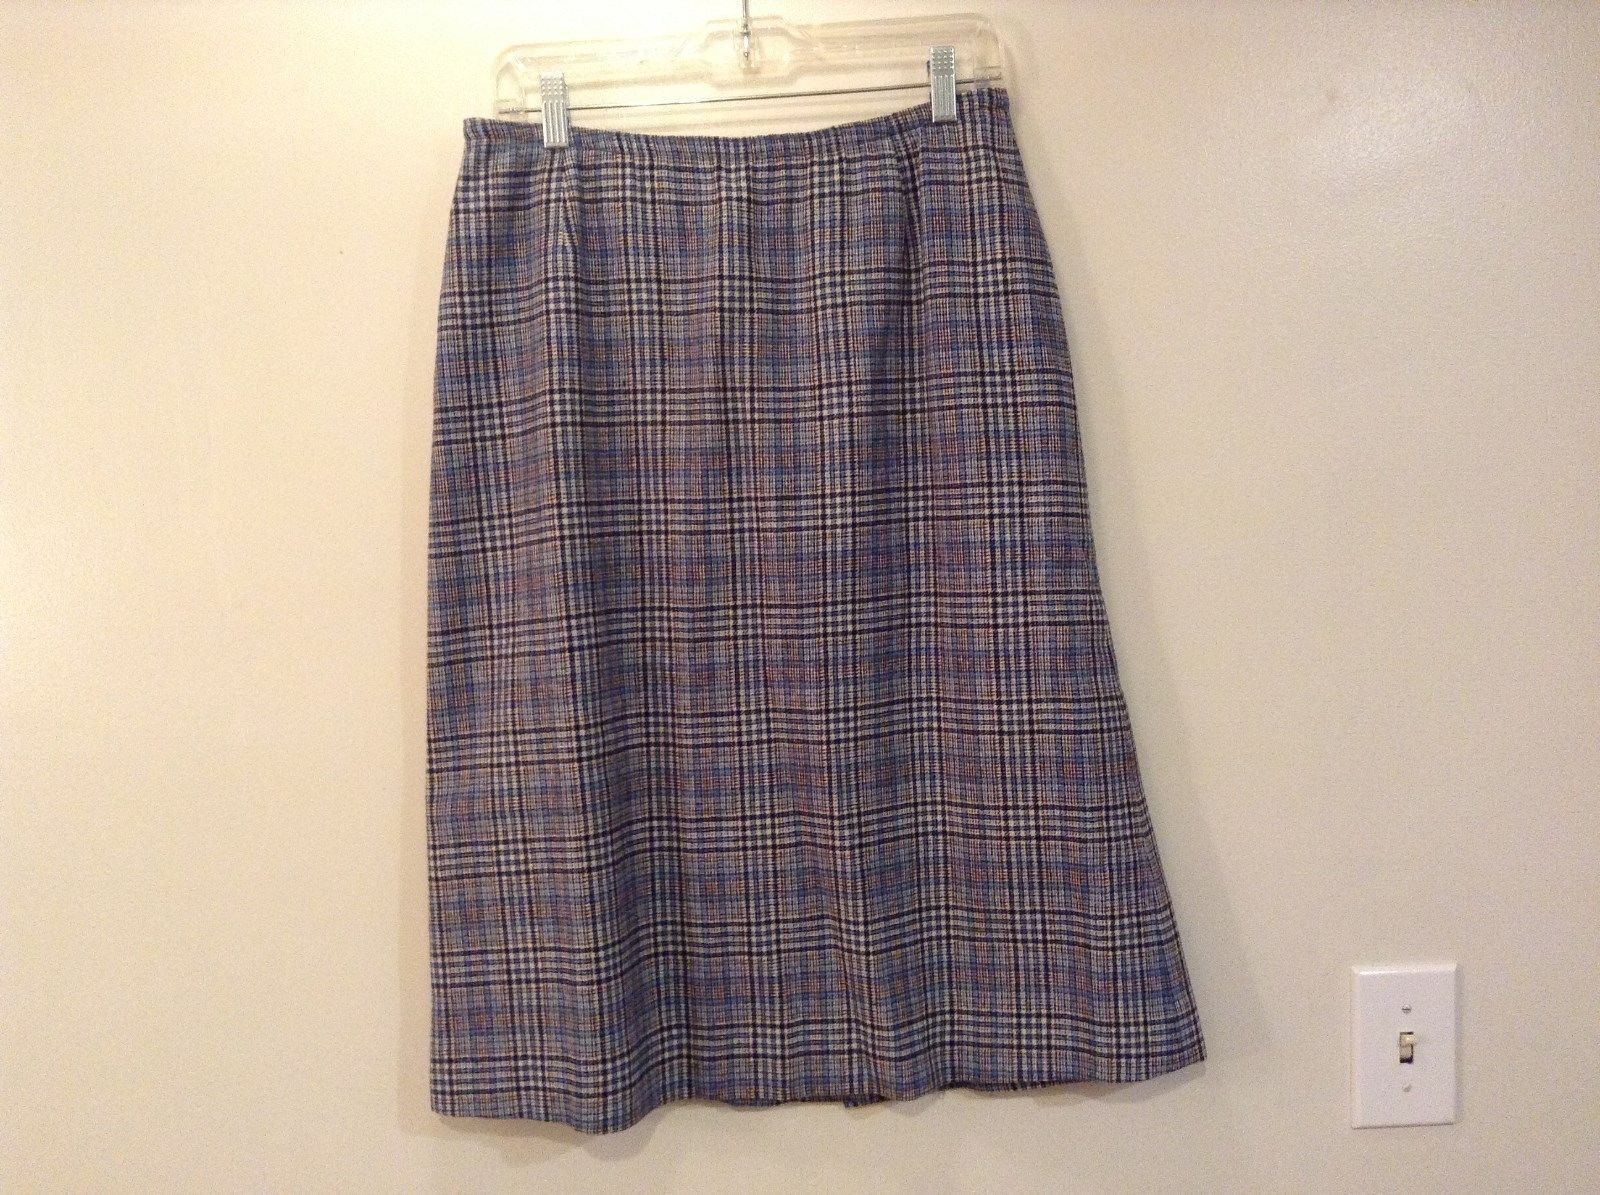 Pendleton Wool Mills Plaid Skirt Blue White Red Made in USA Measurements Below